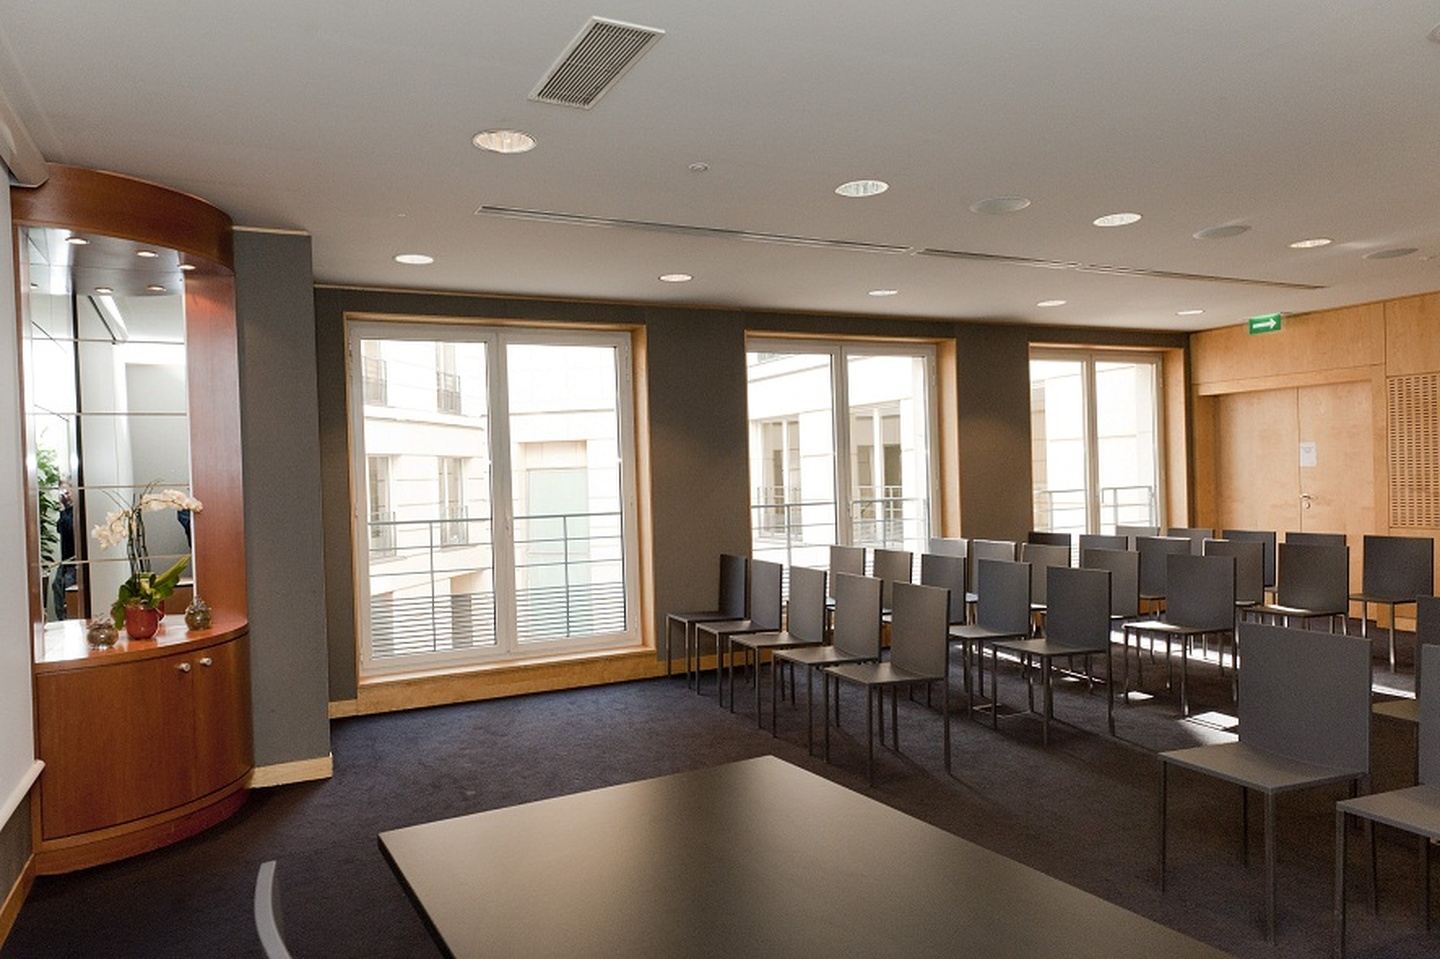 Paris corporate event venues Meetingraum SERVCORP - Edouard VII Conference Center - Tokyo Meeting room image 1